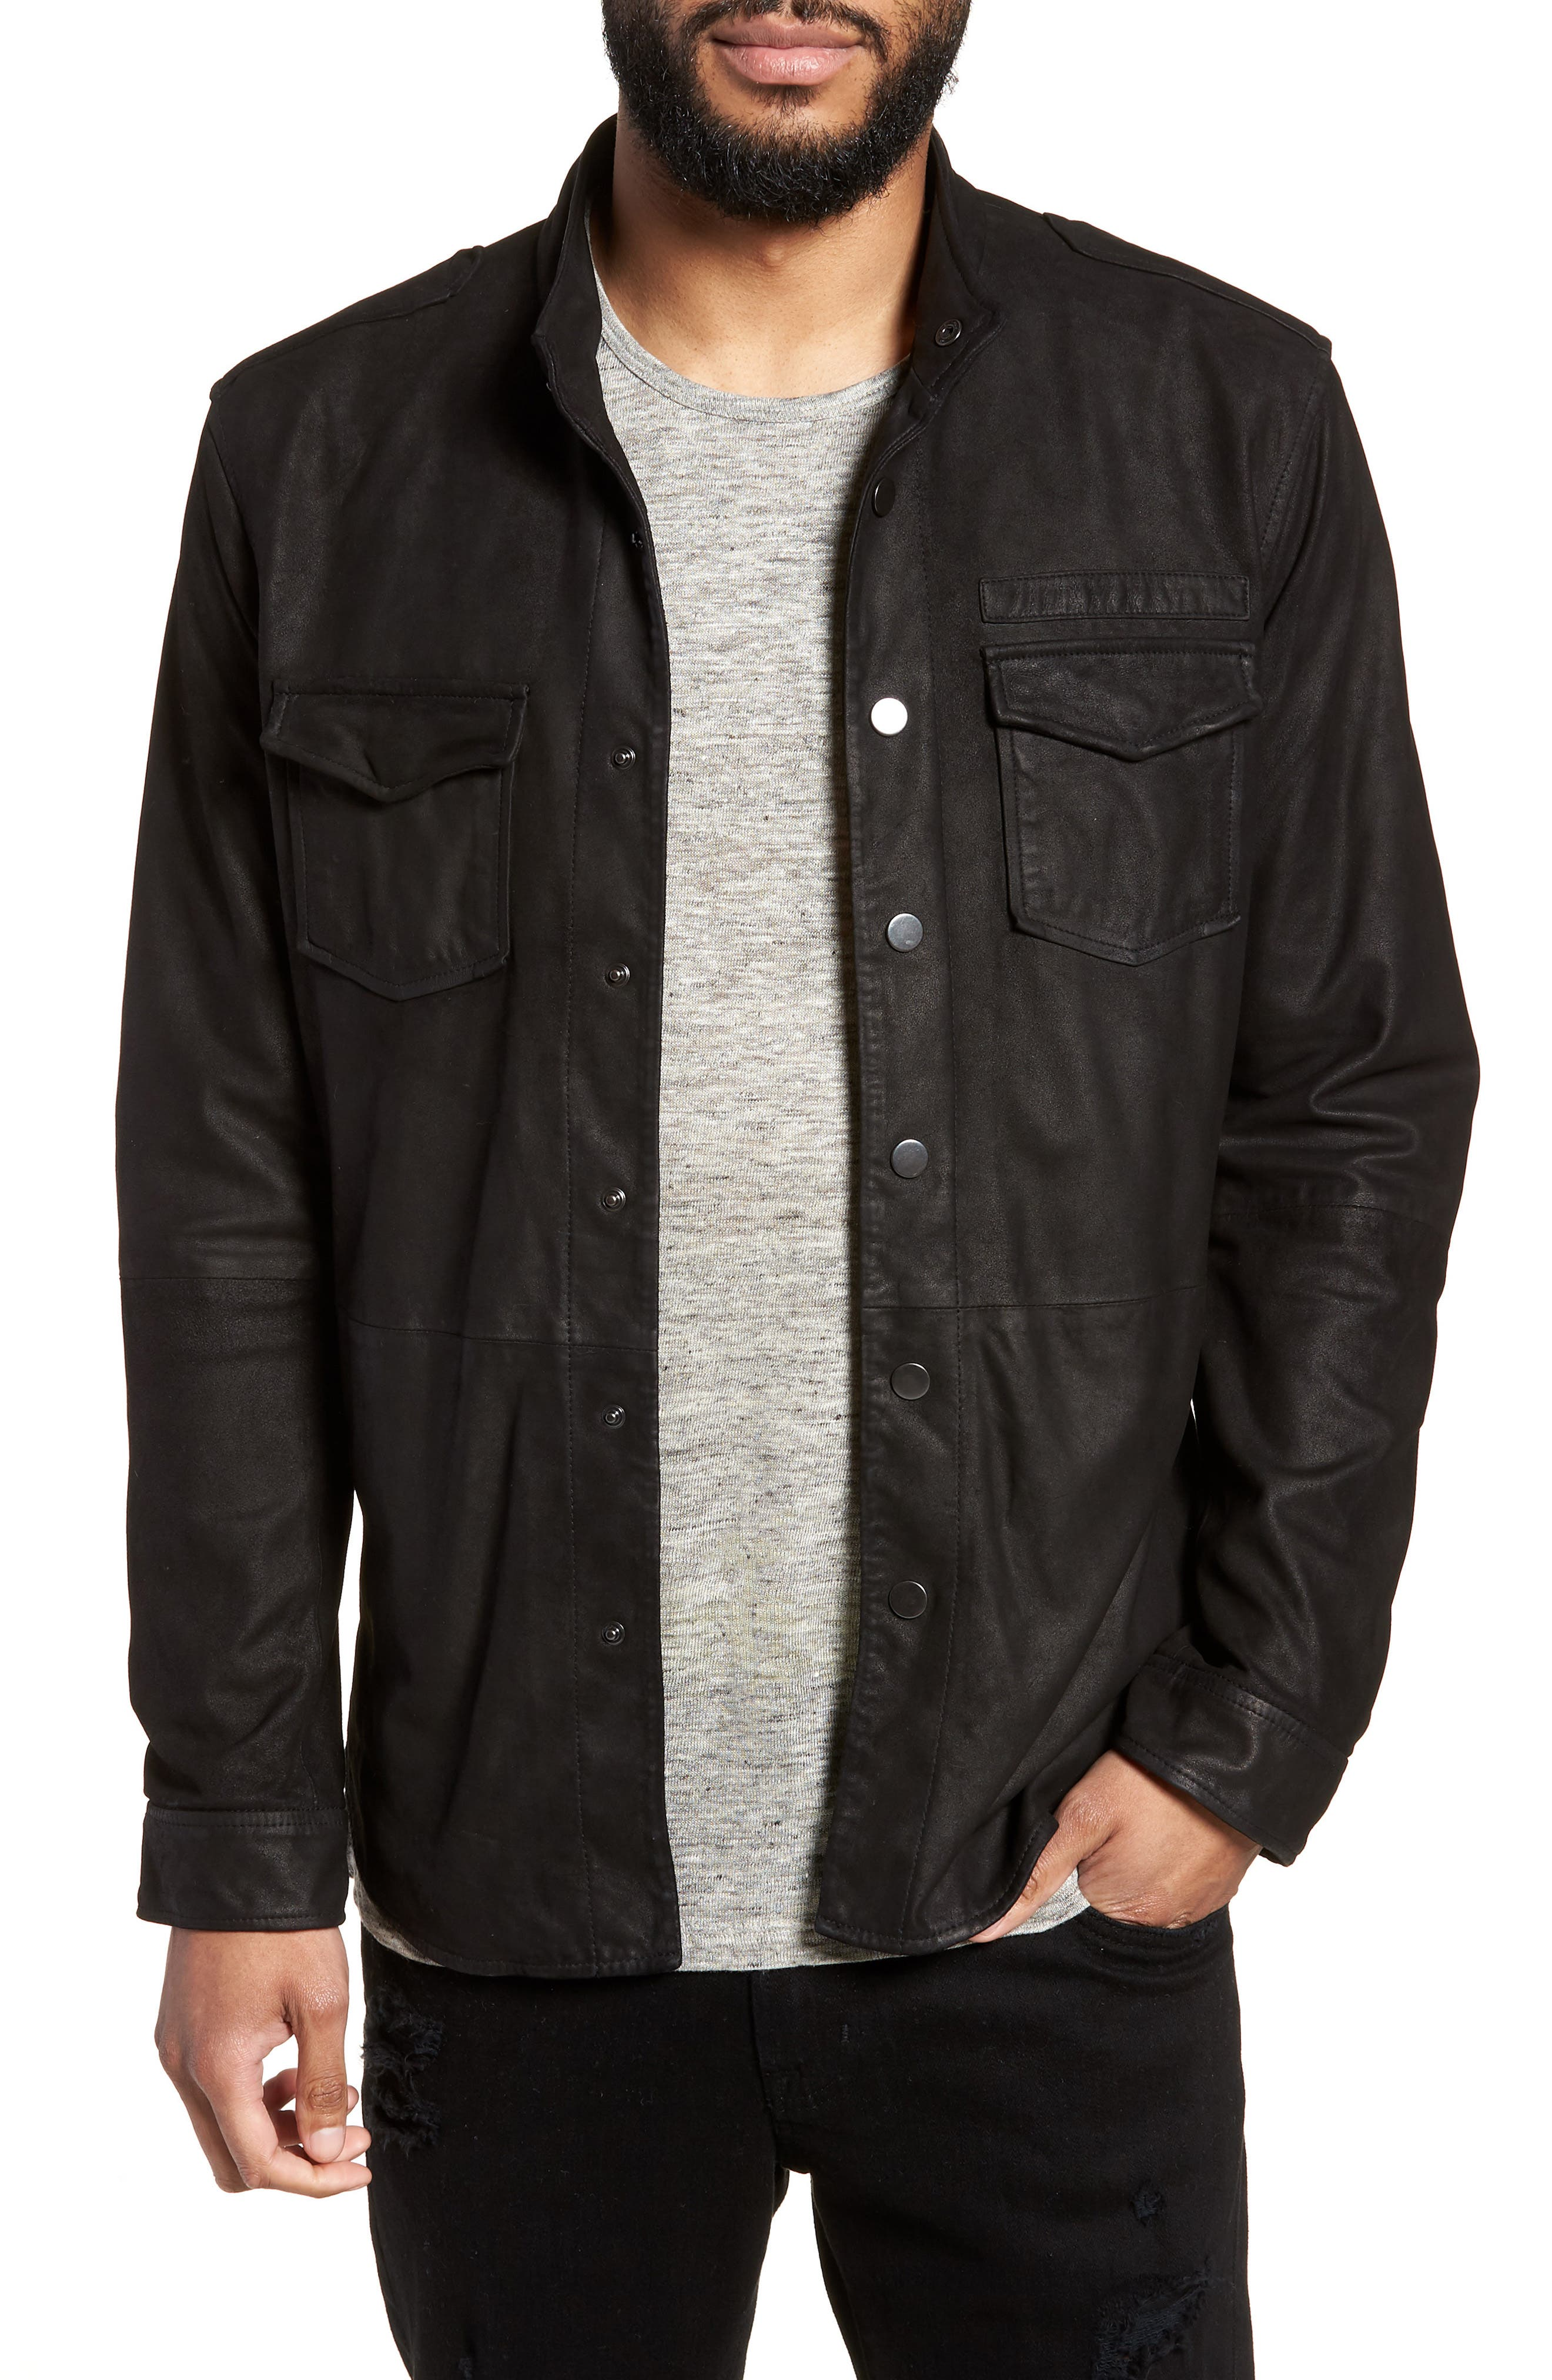 Main Image - John Varvatos x Nick Jonas Suede Shirt Jacket